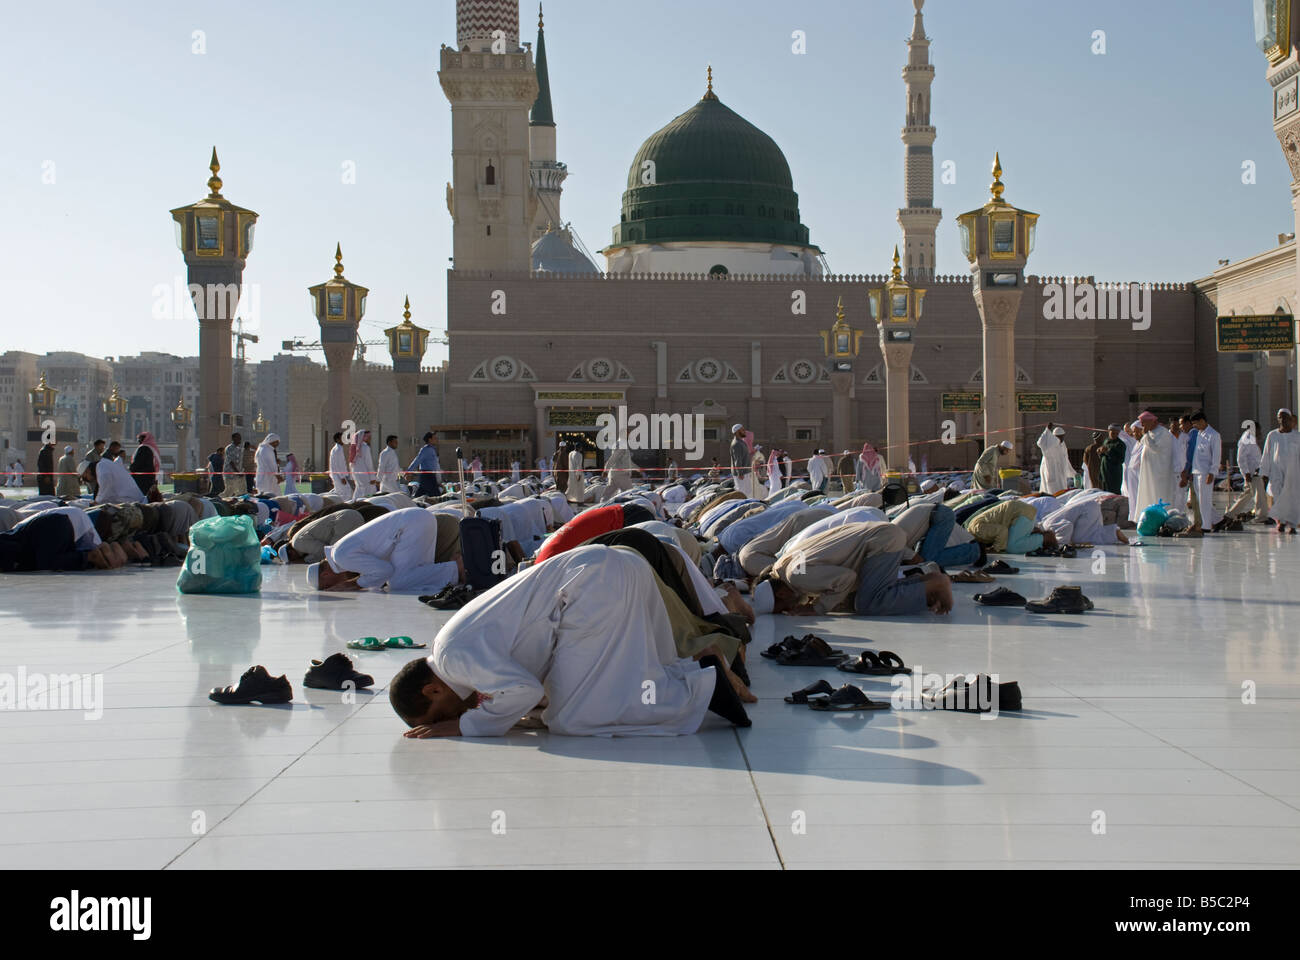 Pilgrims praying in congregation in front of the green dome of Masjid al Nabawi in Madinah Saudi Arabia - Stock Image